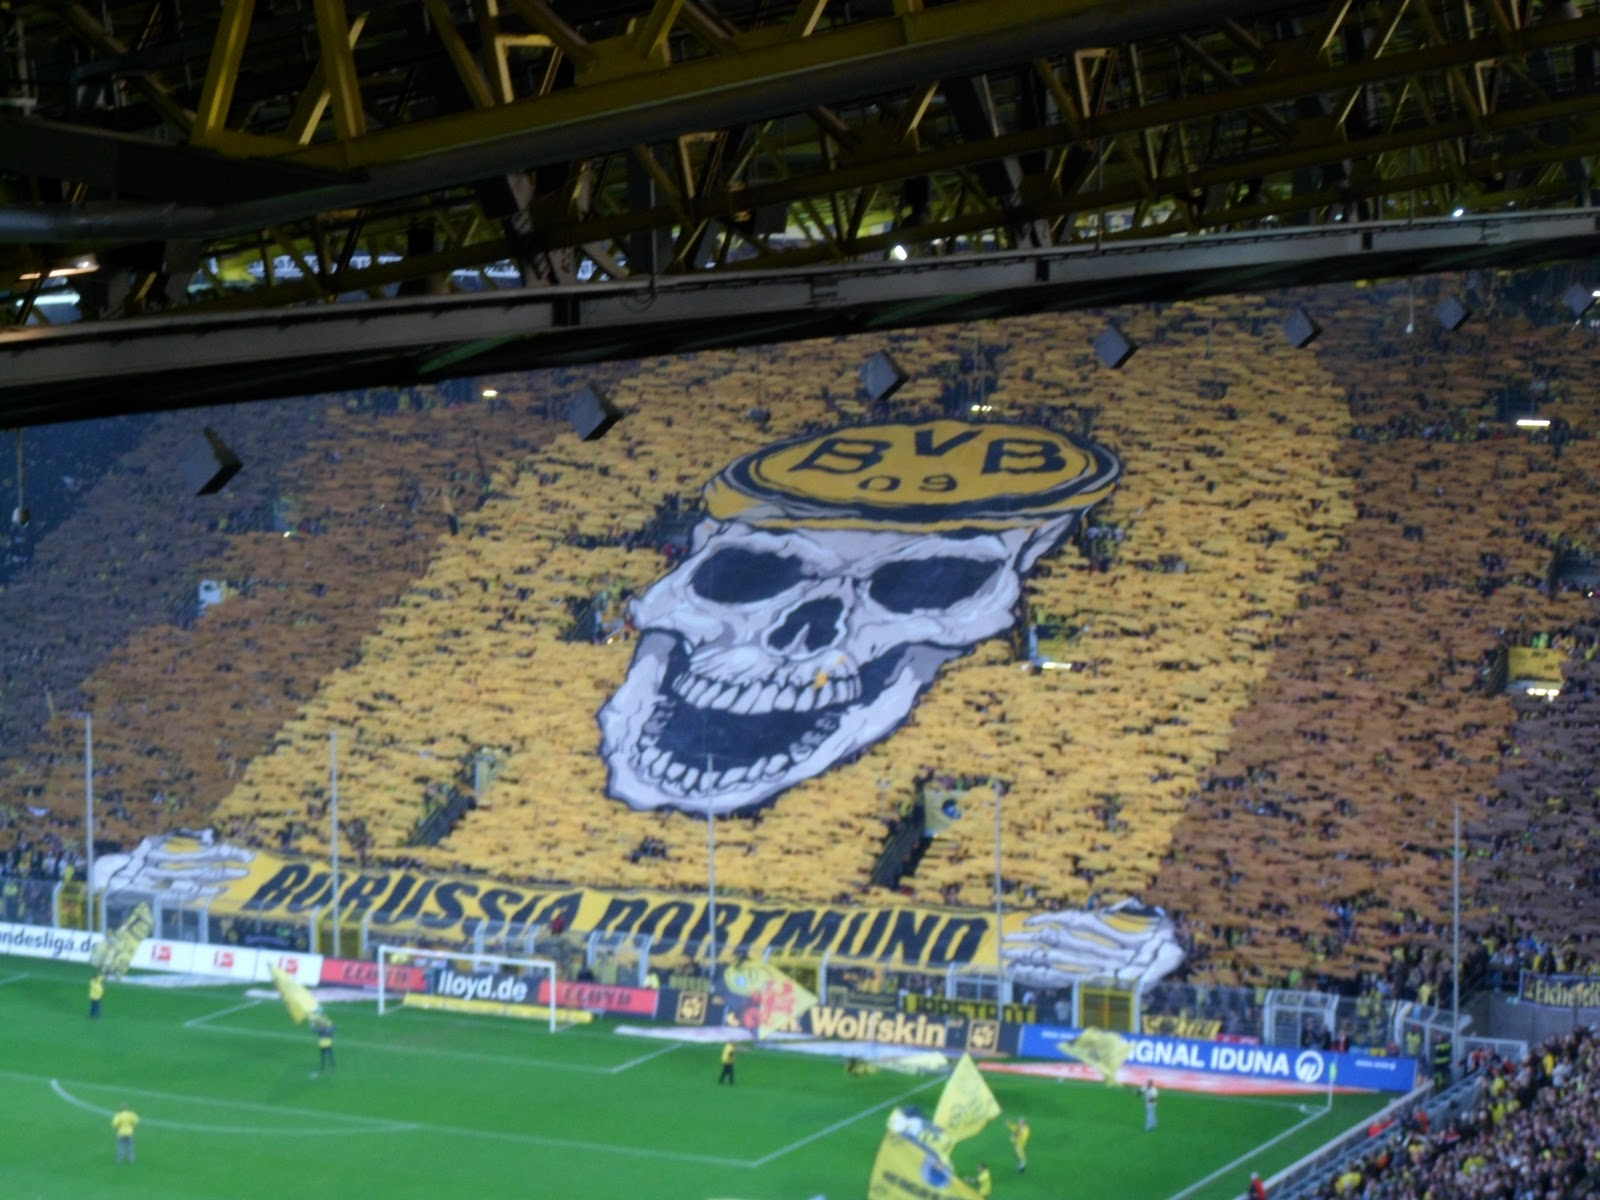 Signal Iduna Park Wallpaper Hd Borussia Dortmund Vs Vfl Wolfsburg November 2011 Bar